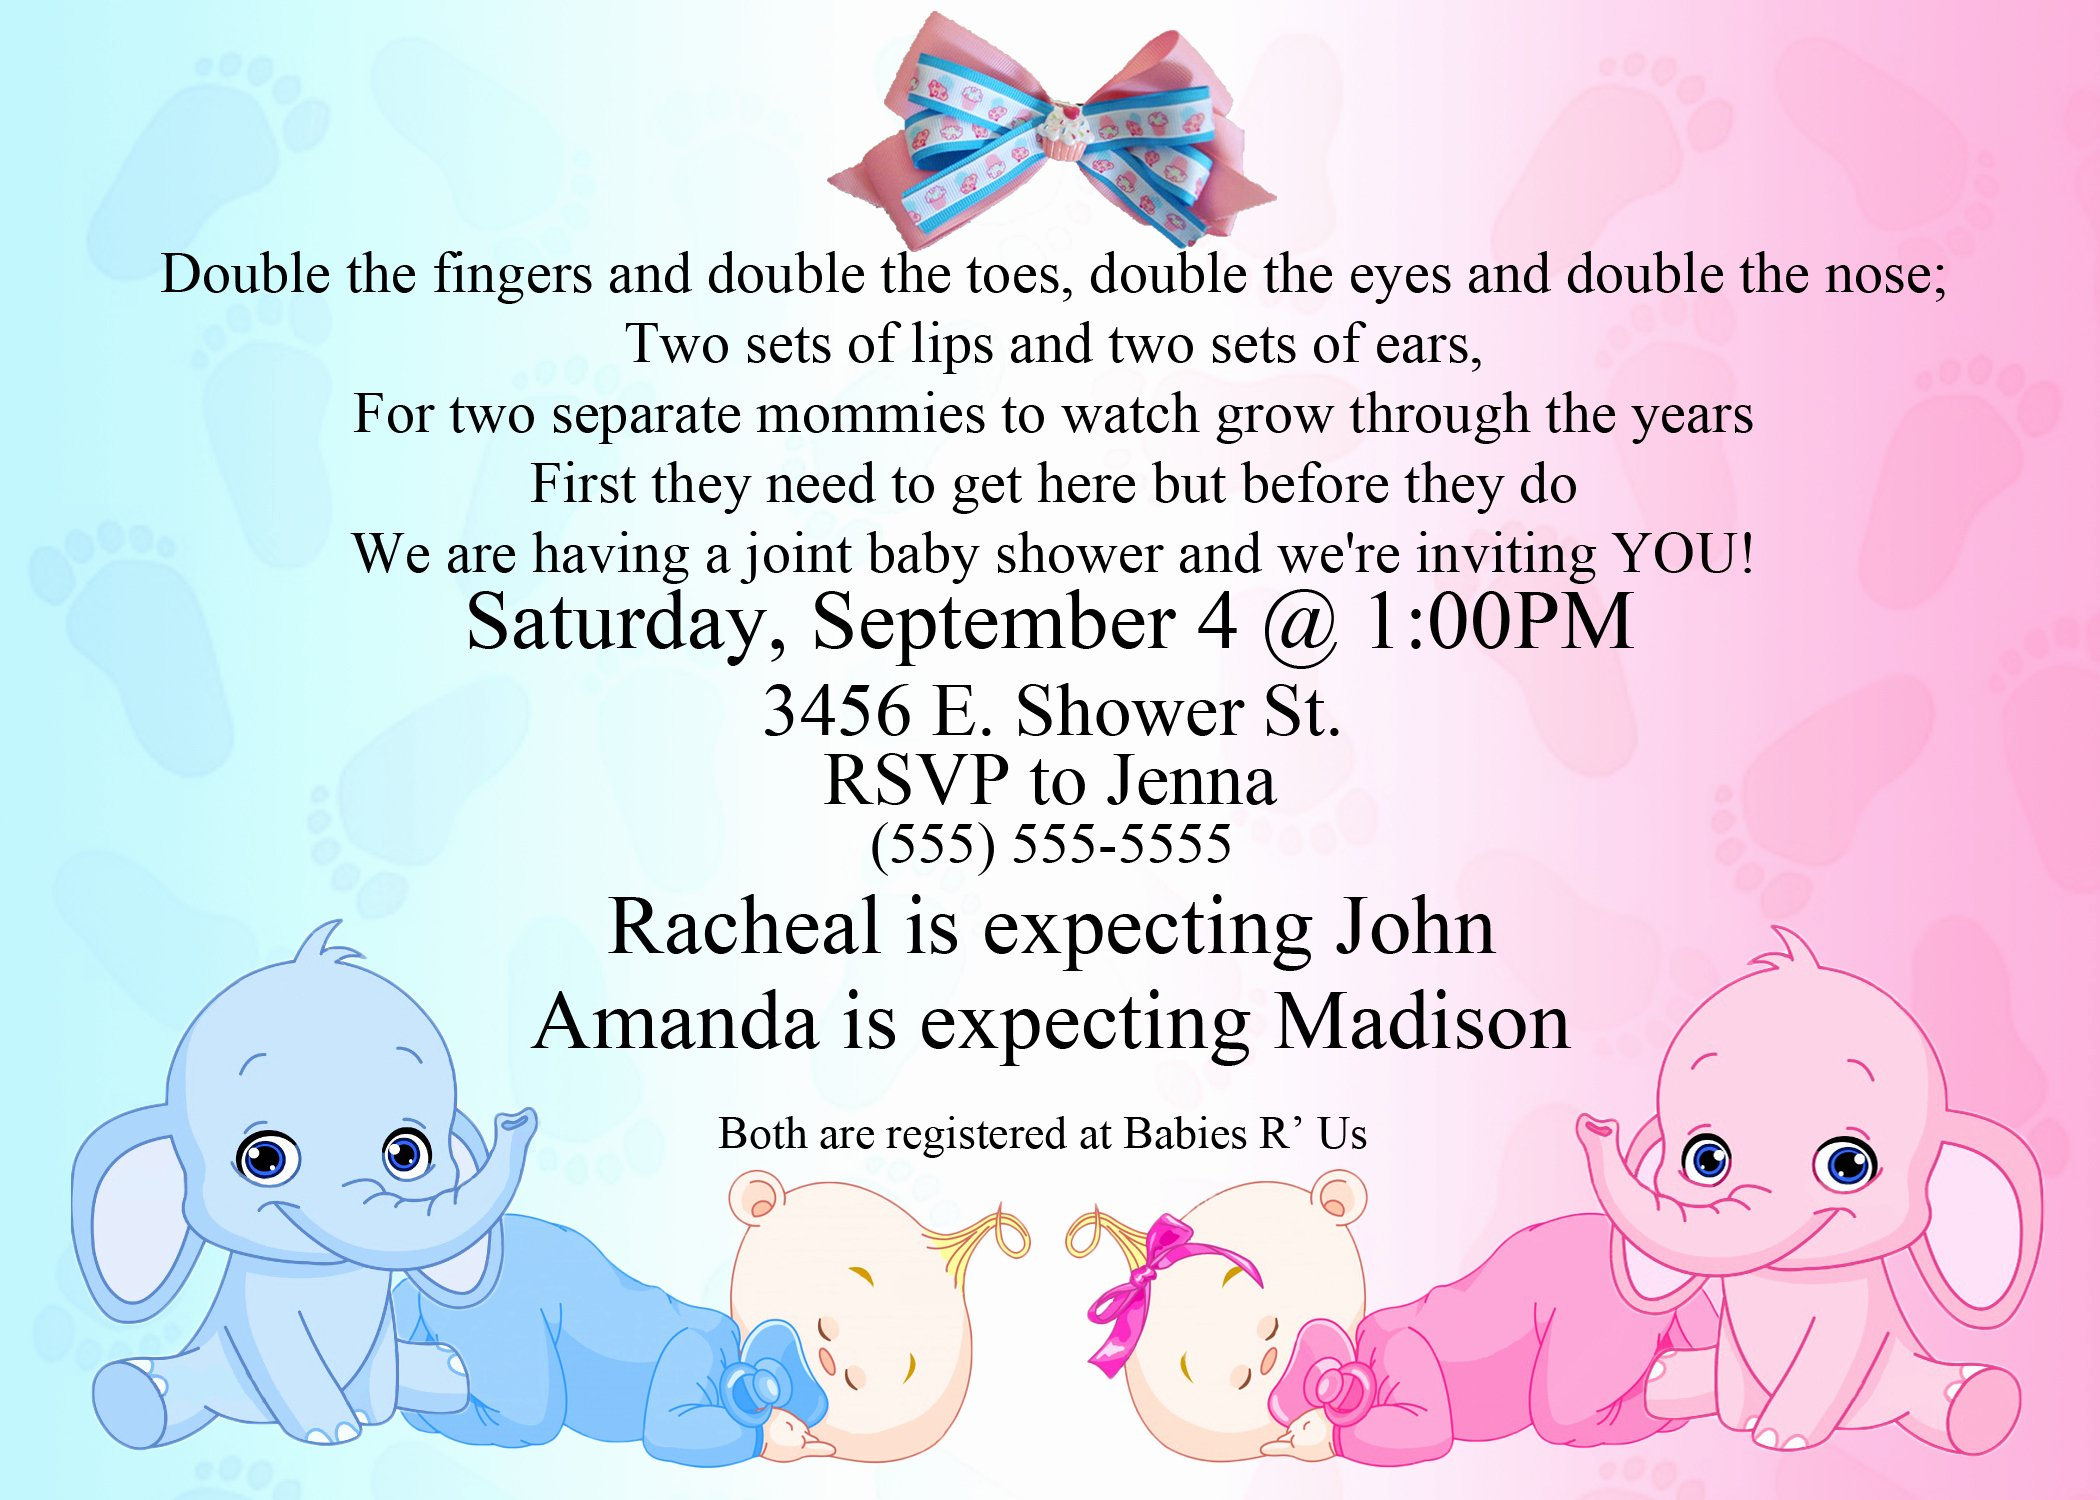 Downloadable Baby Shower Invitation Templates Inspirational Baby Shower Invitation Ideas for Twins